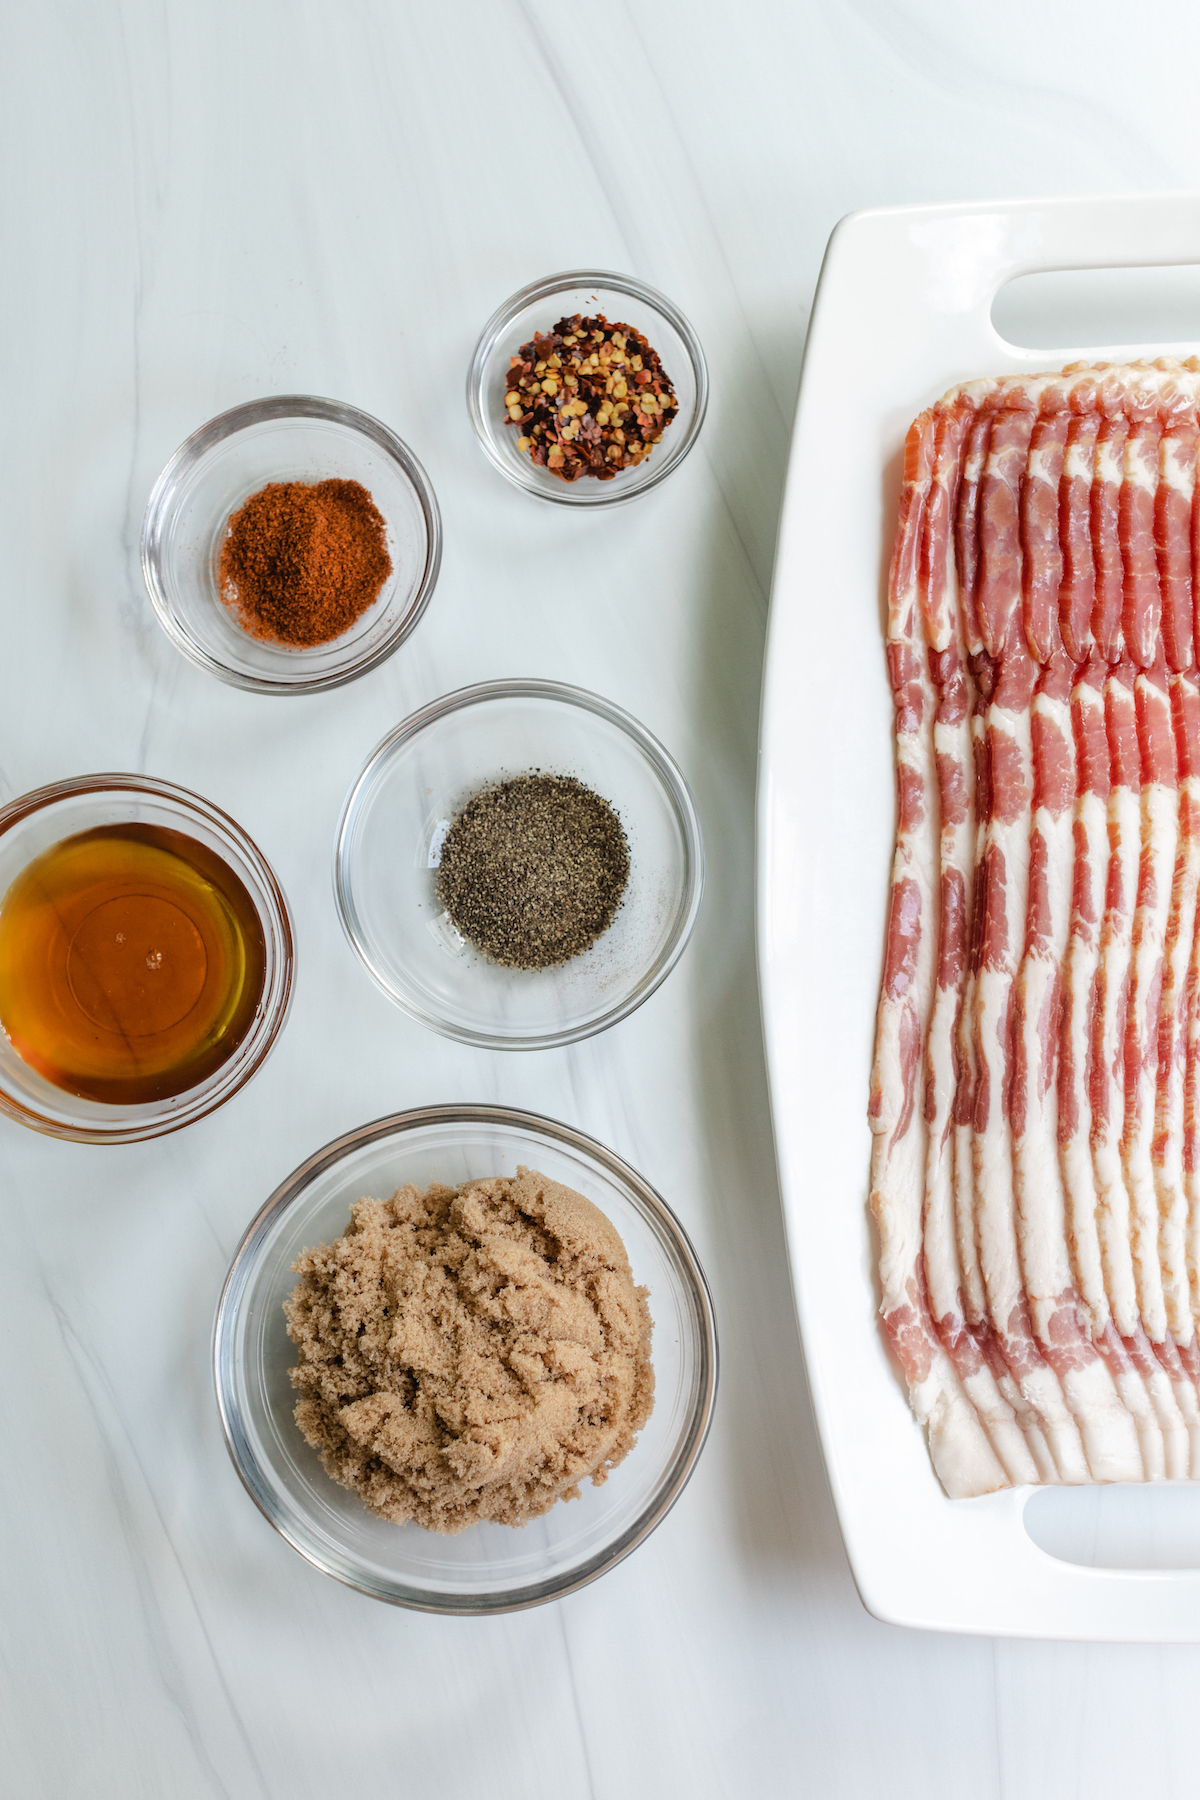 Million Dollar Bacon Recipe | Bacon (also known as Millionaire Bacon) with brown sugar, cayenne and red pepper flakes!